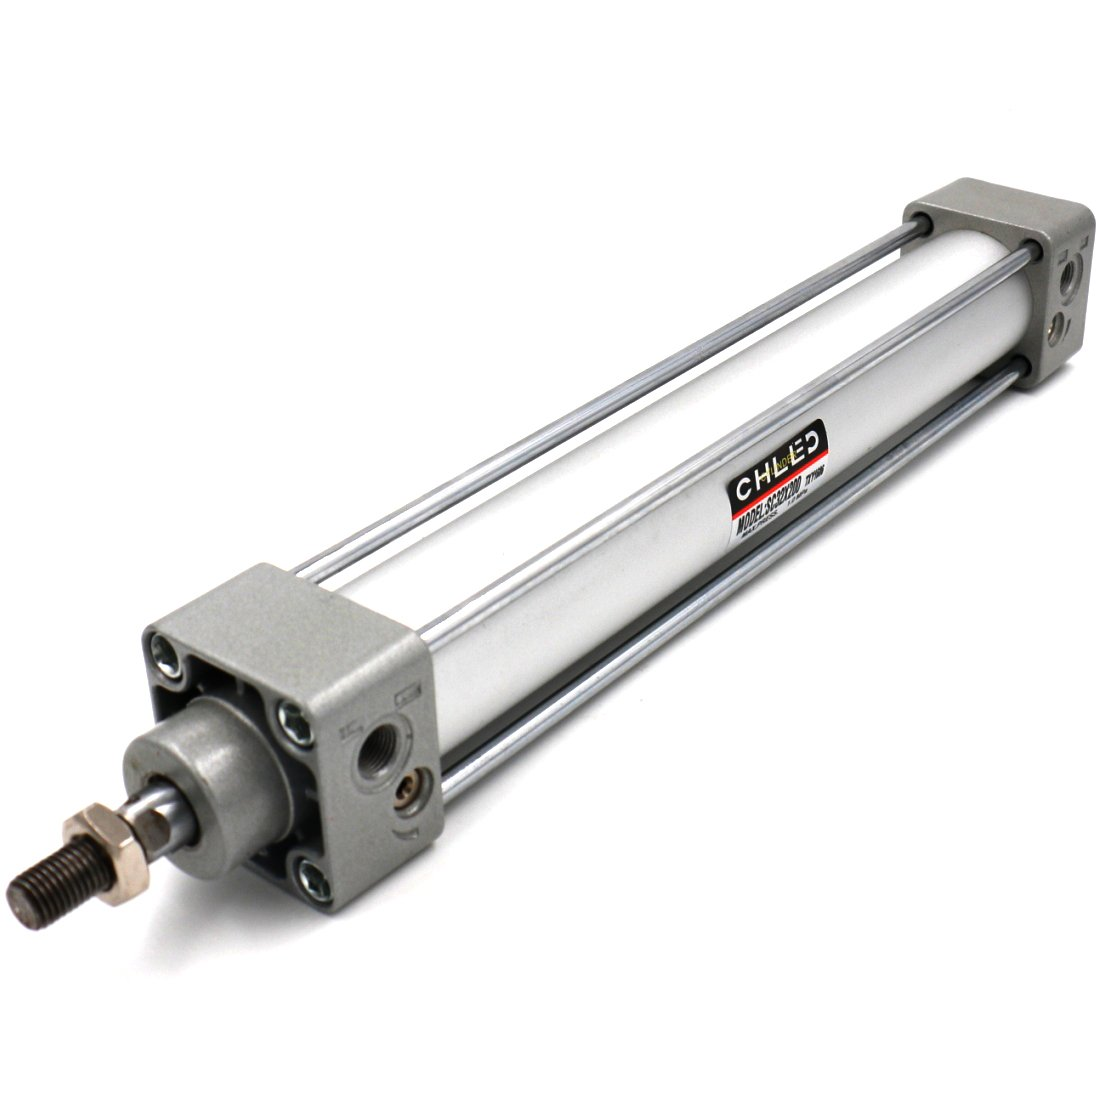 Baomain Pneumatic Air Cylinder SC 32-200 32mm Bore 200mm Stroke Screwed Piston Rod Dual Action